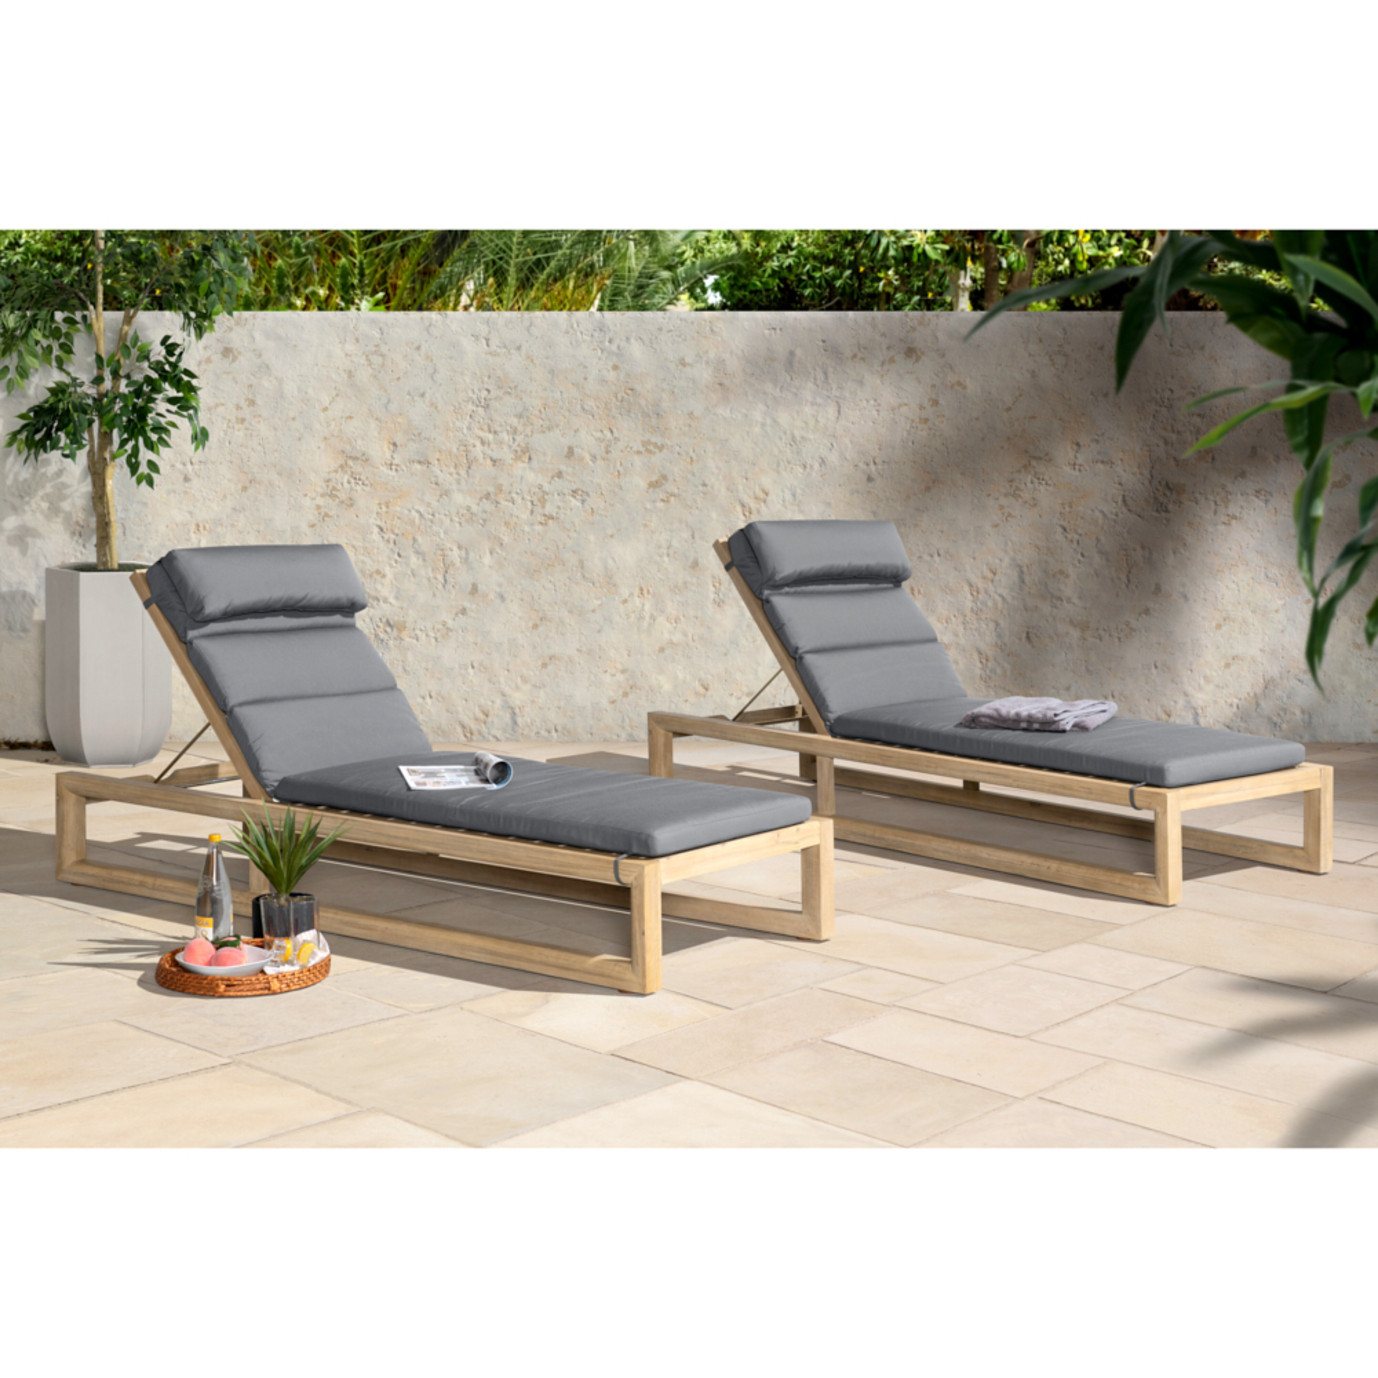 Benson Chaise Lounges - Charcoal Gray